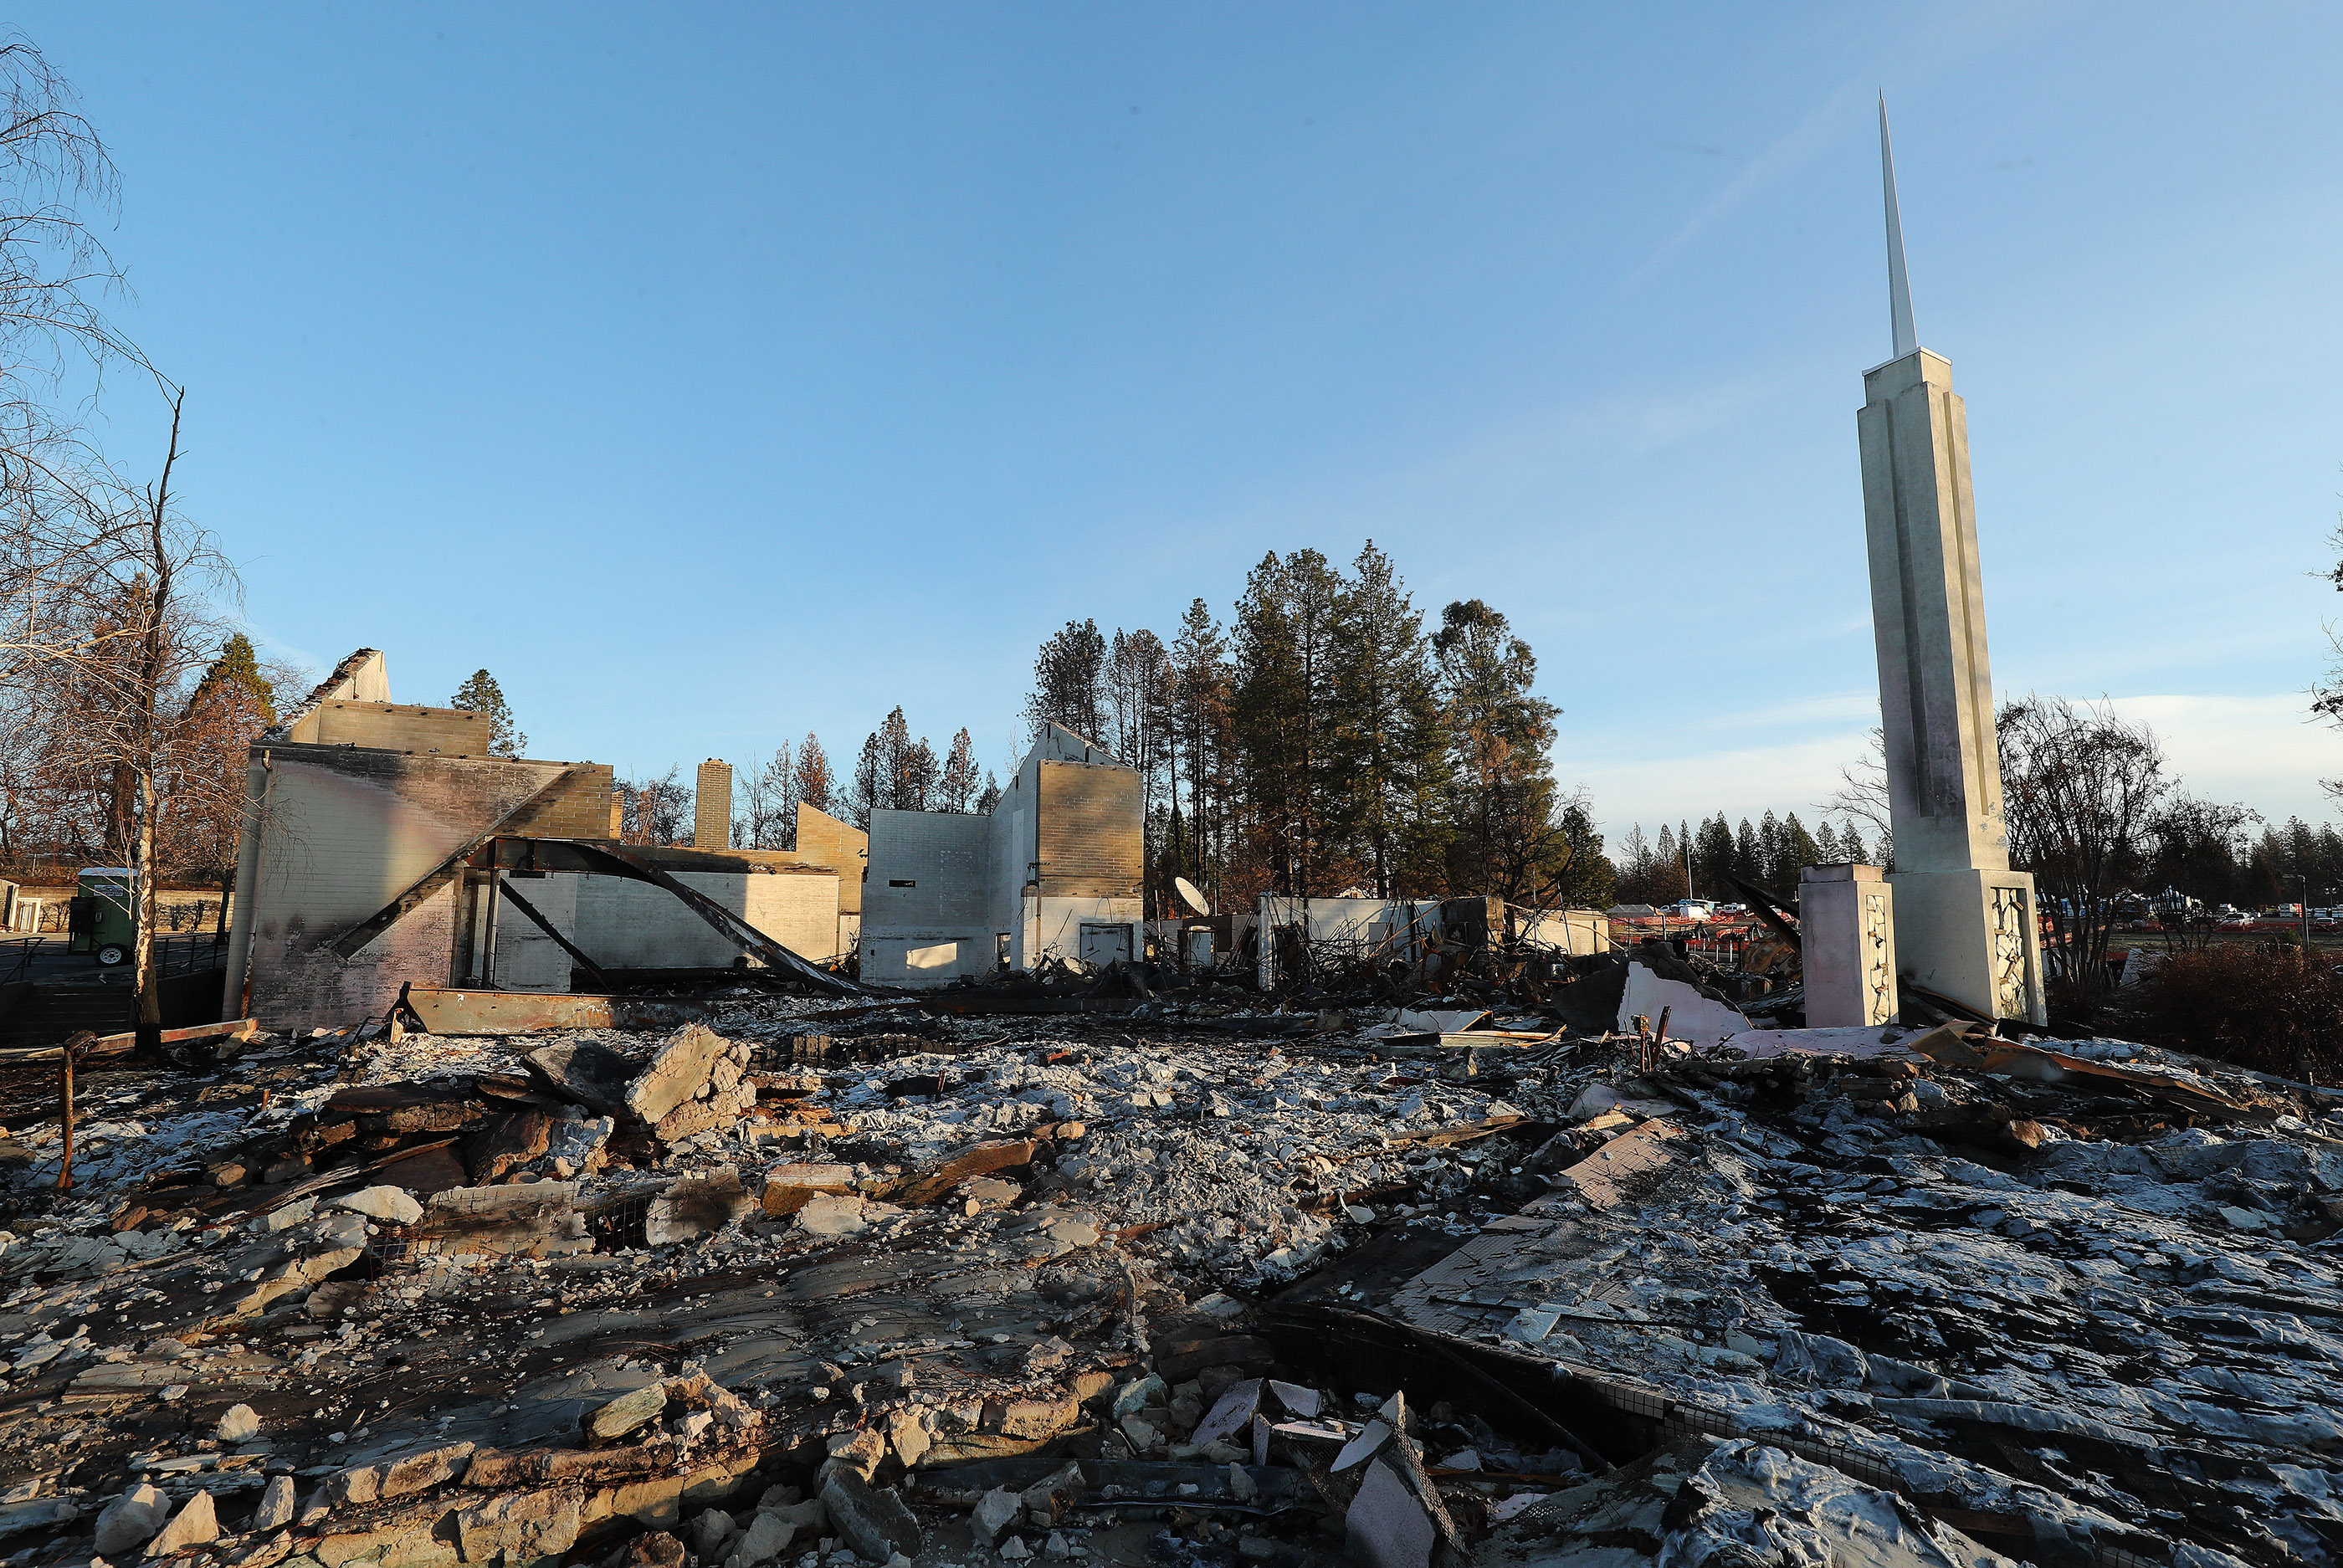 The Paradise LDS 1st Ward meetinghouse was destroyed in Paradise, California, on Saturday, Jan. 12, 2019, two months after the Camp Fire destroyed destroyed more than 18,000 homes and businesses..